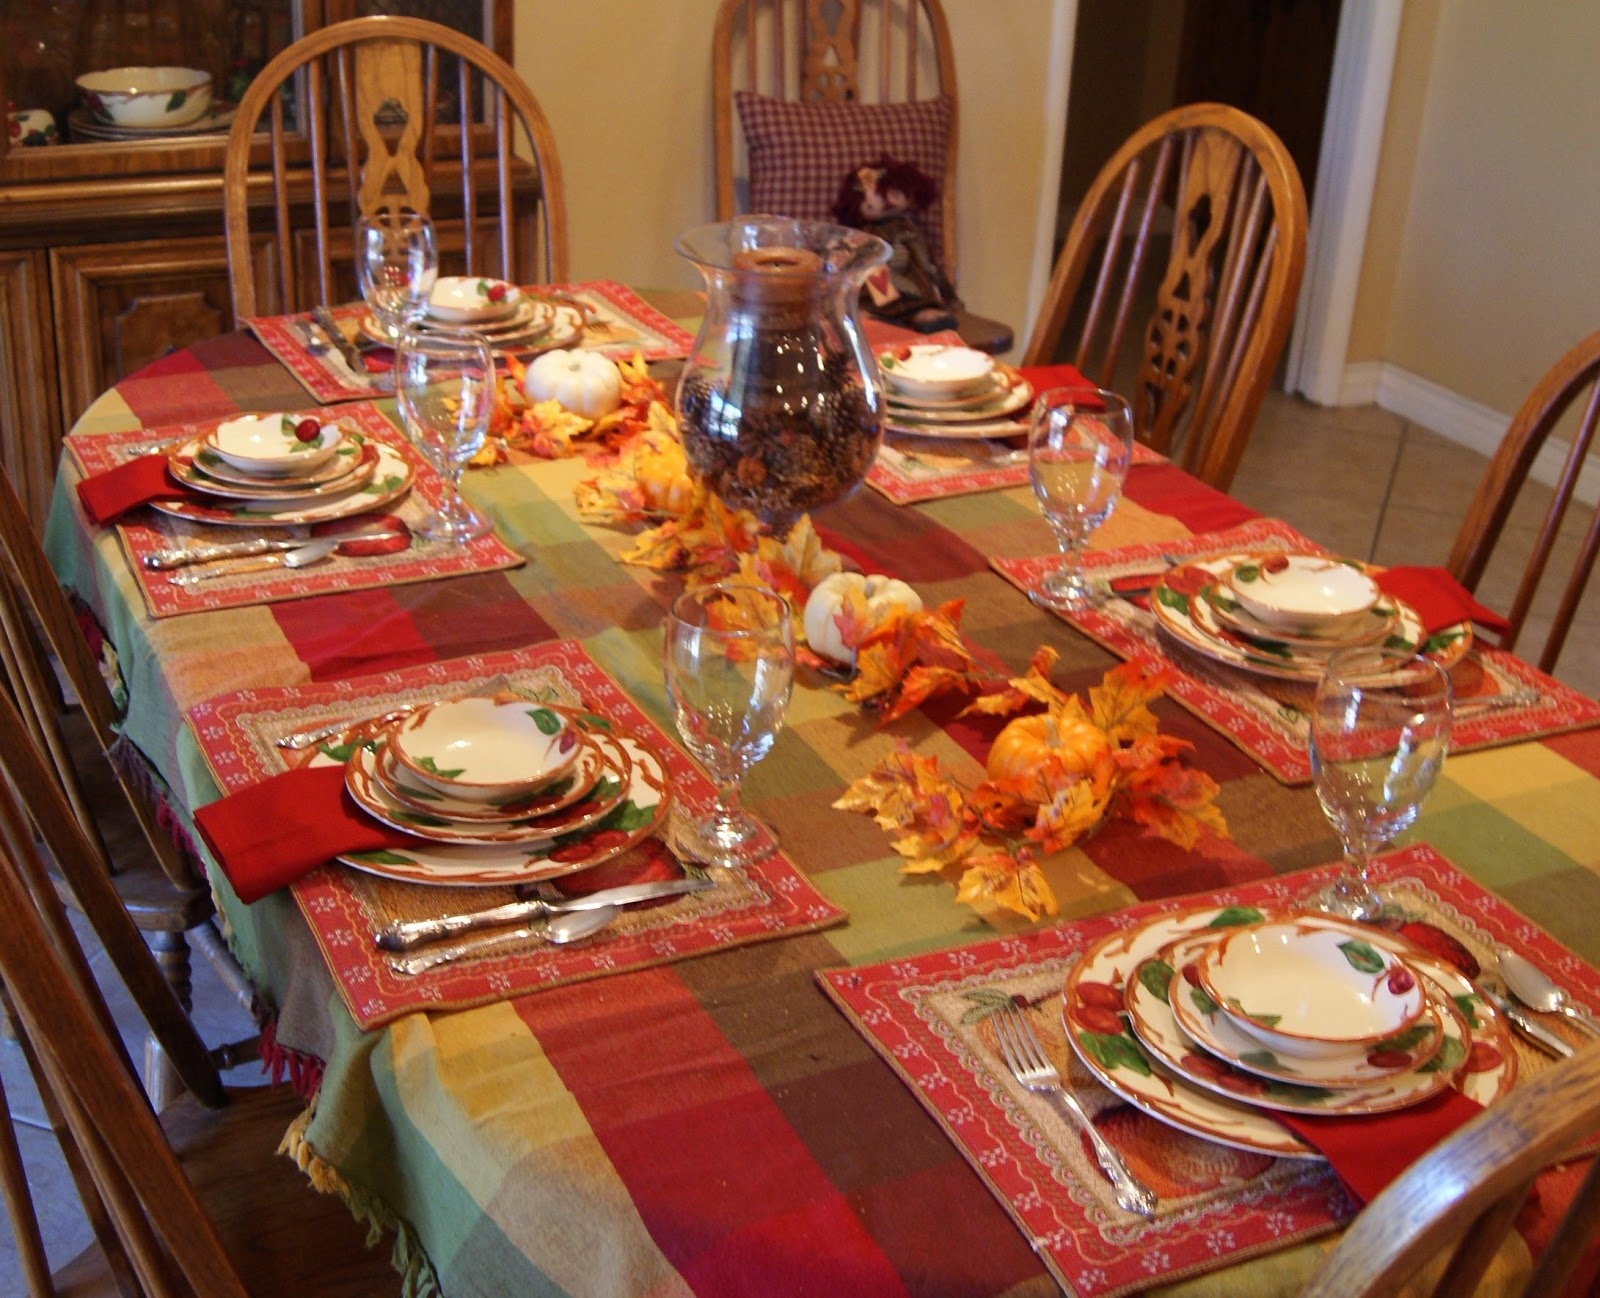 Puddle jumper creations my thanksgiving table How to decorate your house for thanksgiving